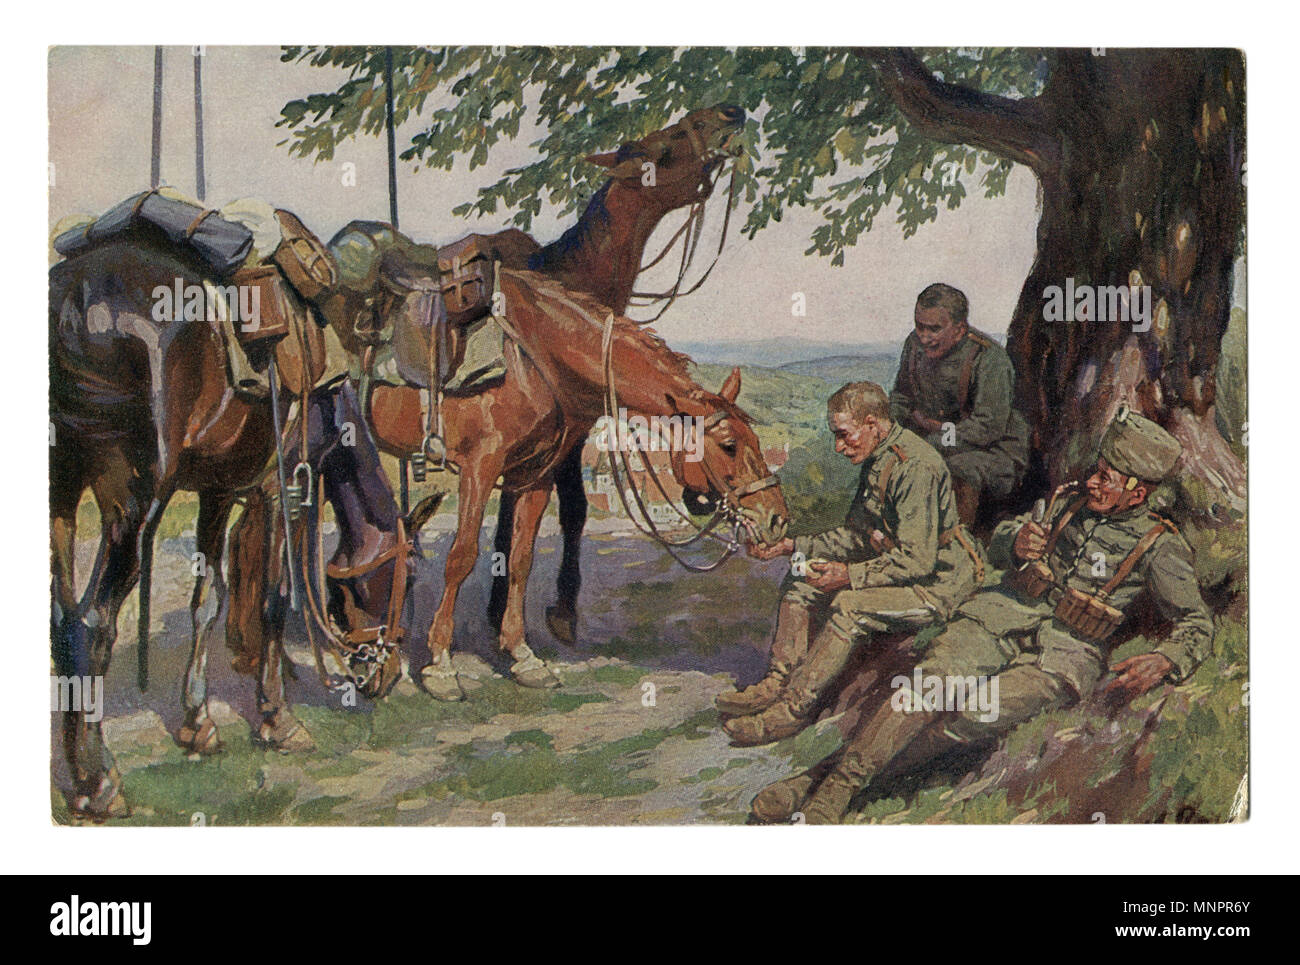 Old German postcard: 'Three friends' Cavalry hussars on a halt in the shade of a tree. One smokes a pipe. The other feeds the horse. world war I 1914 - Stock Image